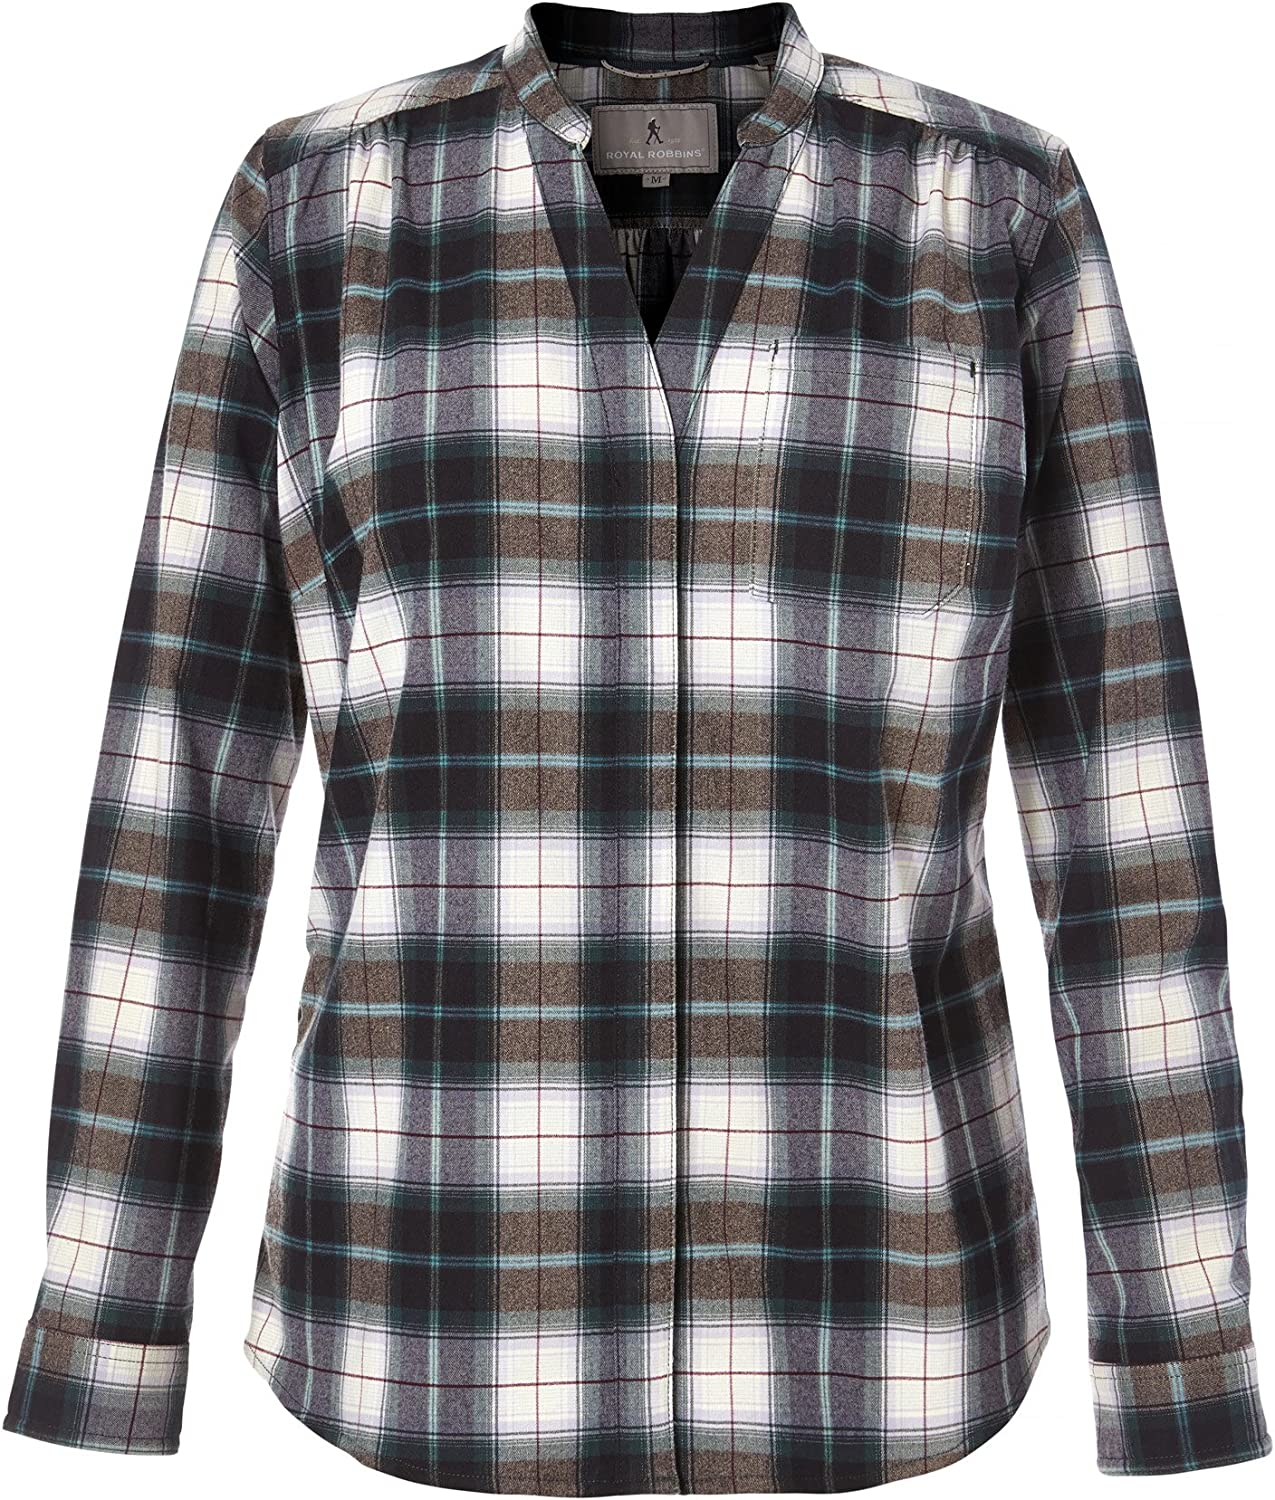 Royal Robbins Women's Merinolux Plaid Flannel Top